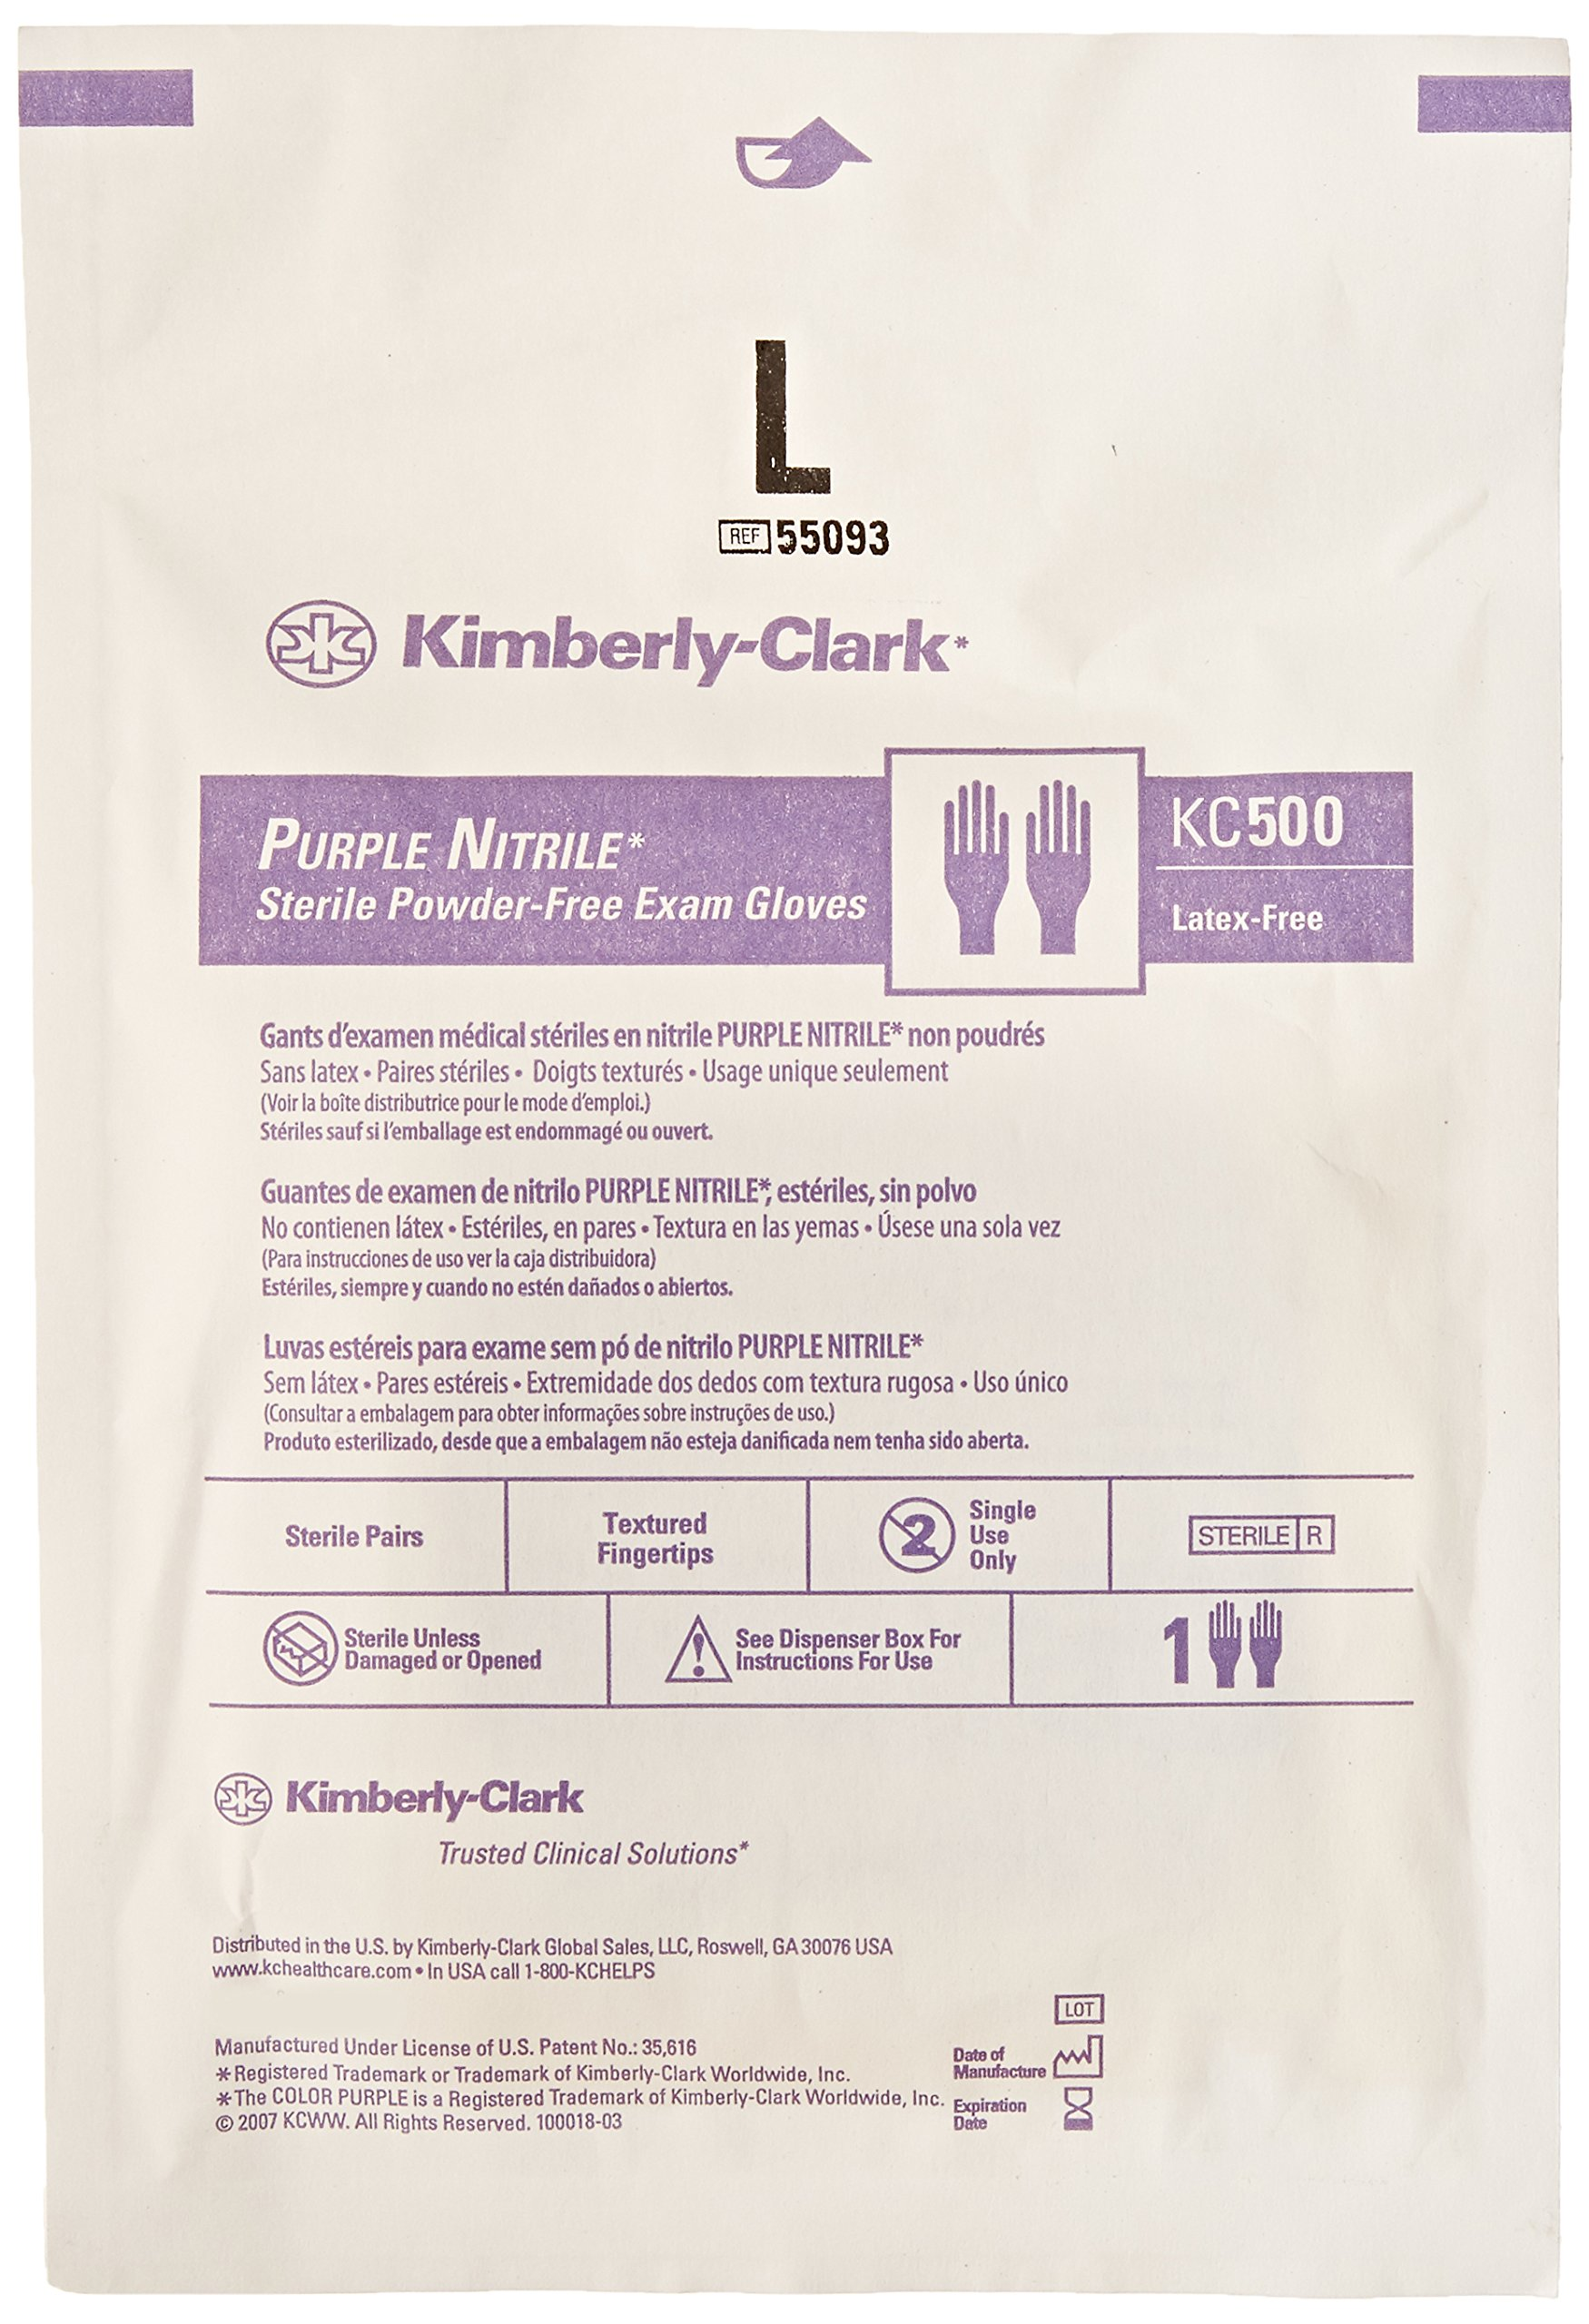 Kimberly Clark Safety 55093 Purple Nitrile Exam Glove, Sterile Pairs, Large (Pack of 50) by Kimberly Clark Safety